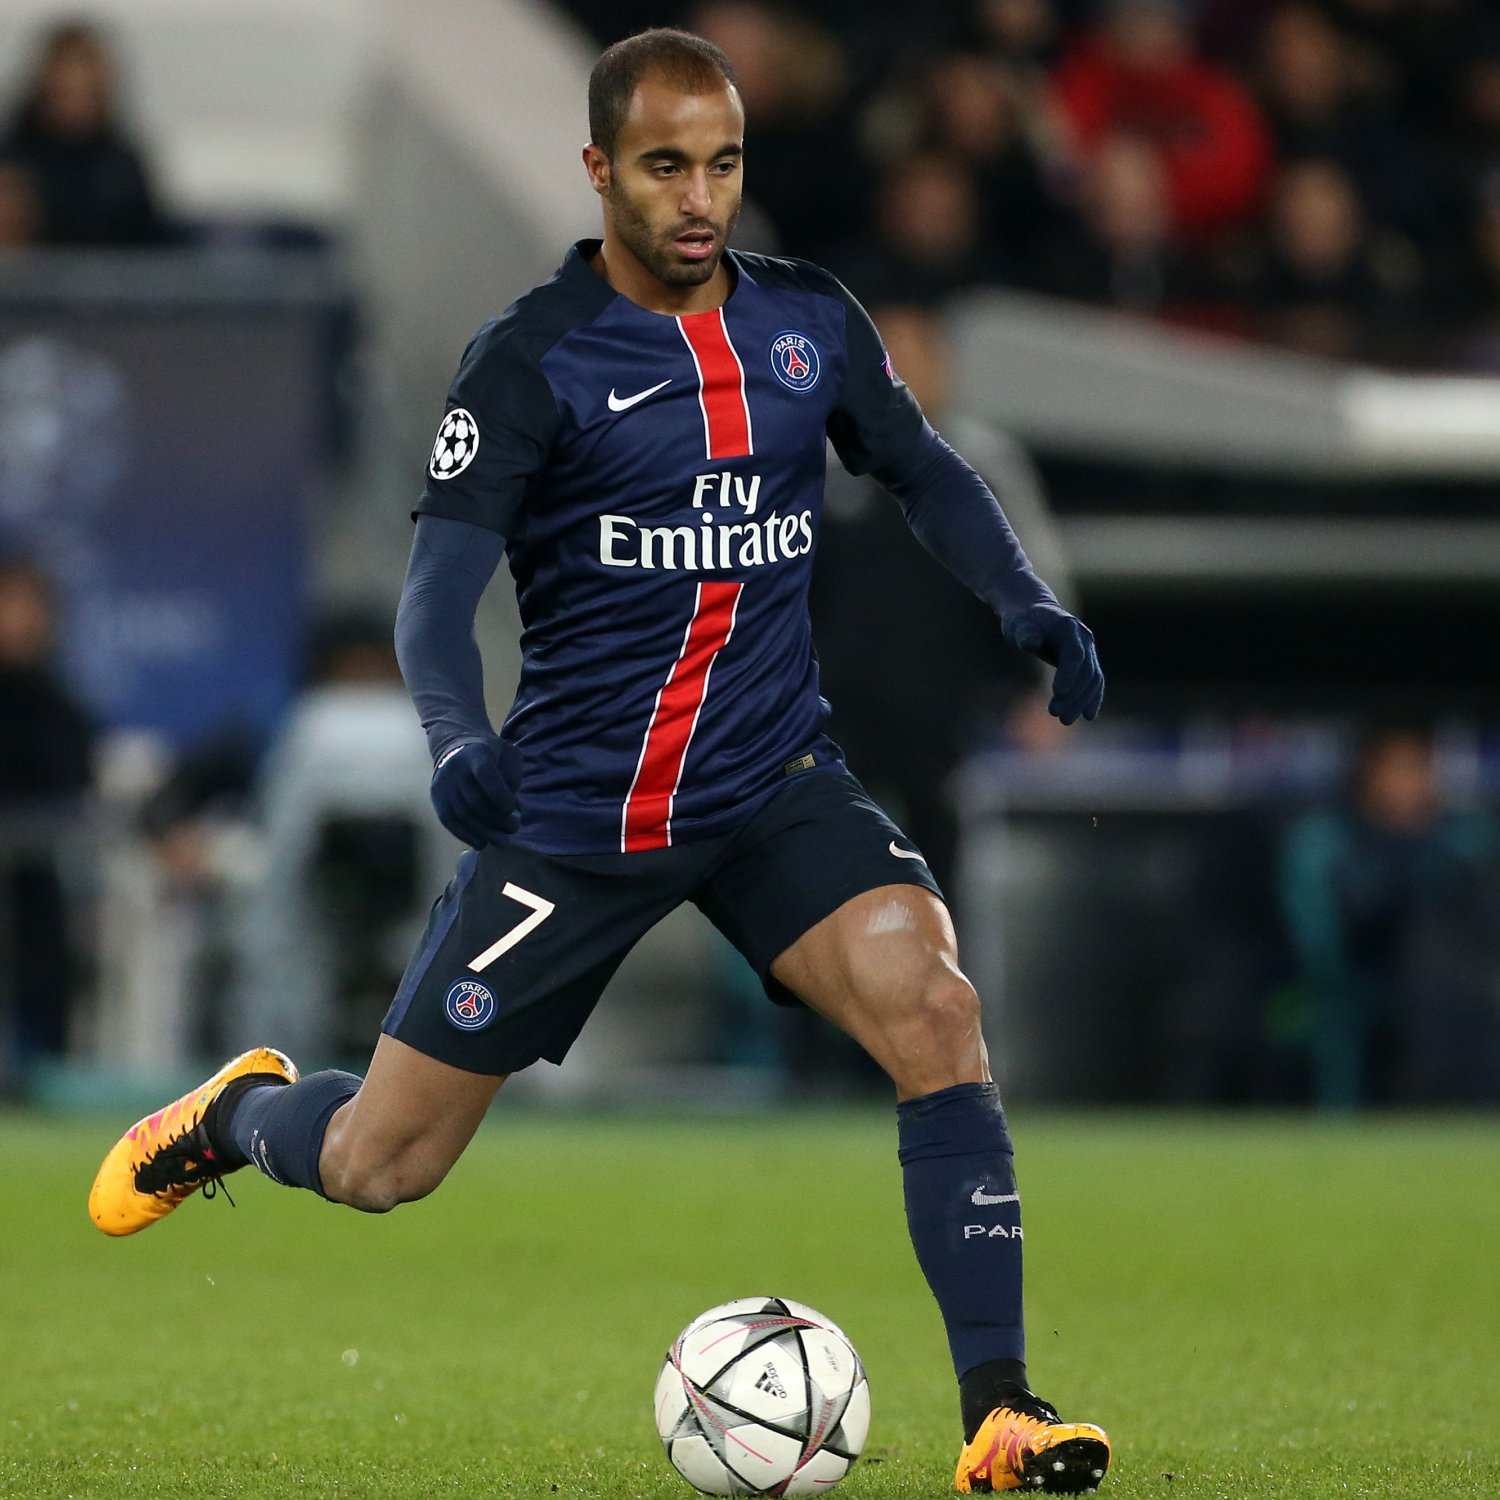 Lucas Moura To Psg Price